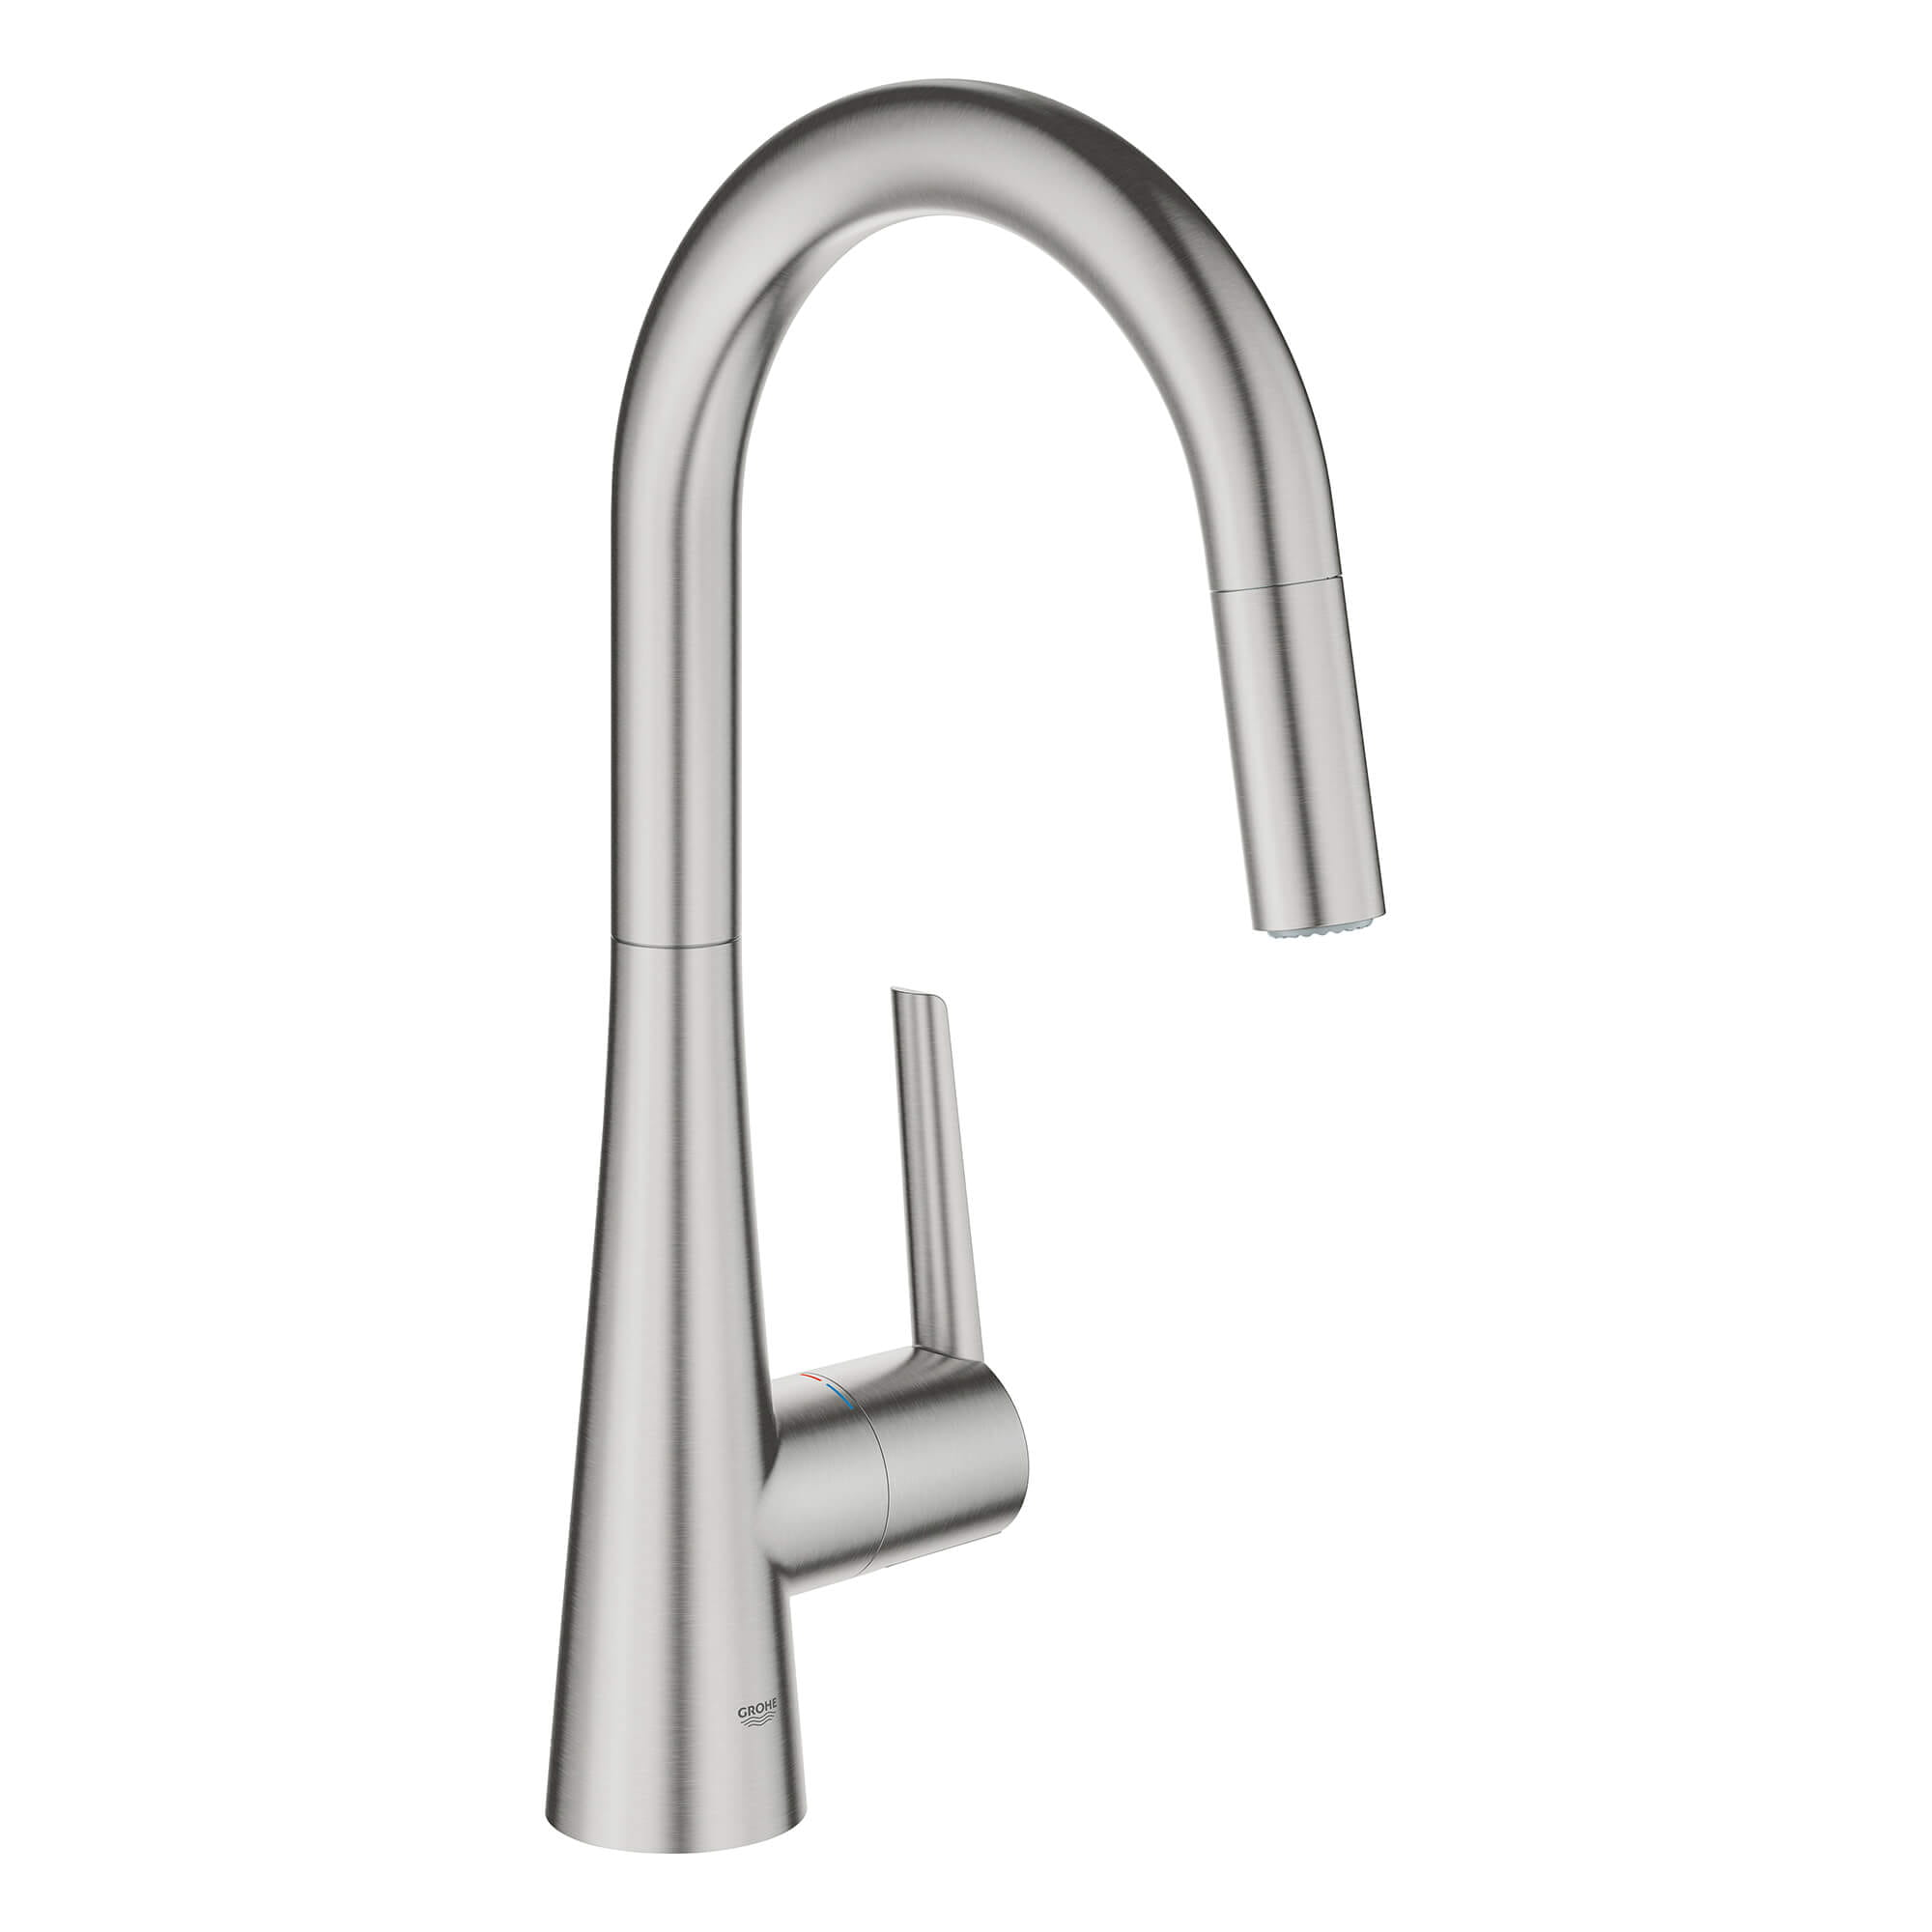 Single Handle Pull Down Kitchen Faucet Dual Spray 175 GPM GROHE SUPERSTEEL